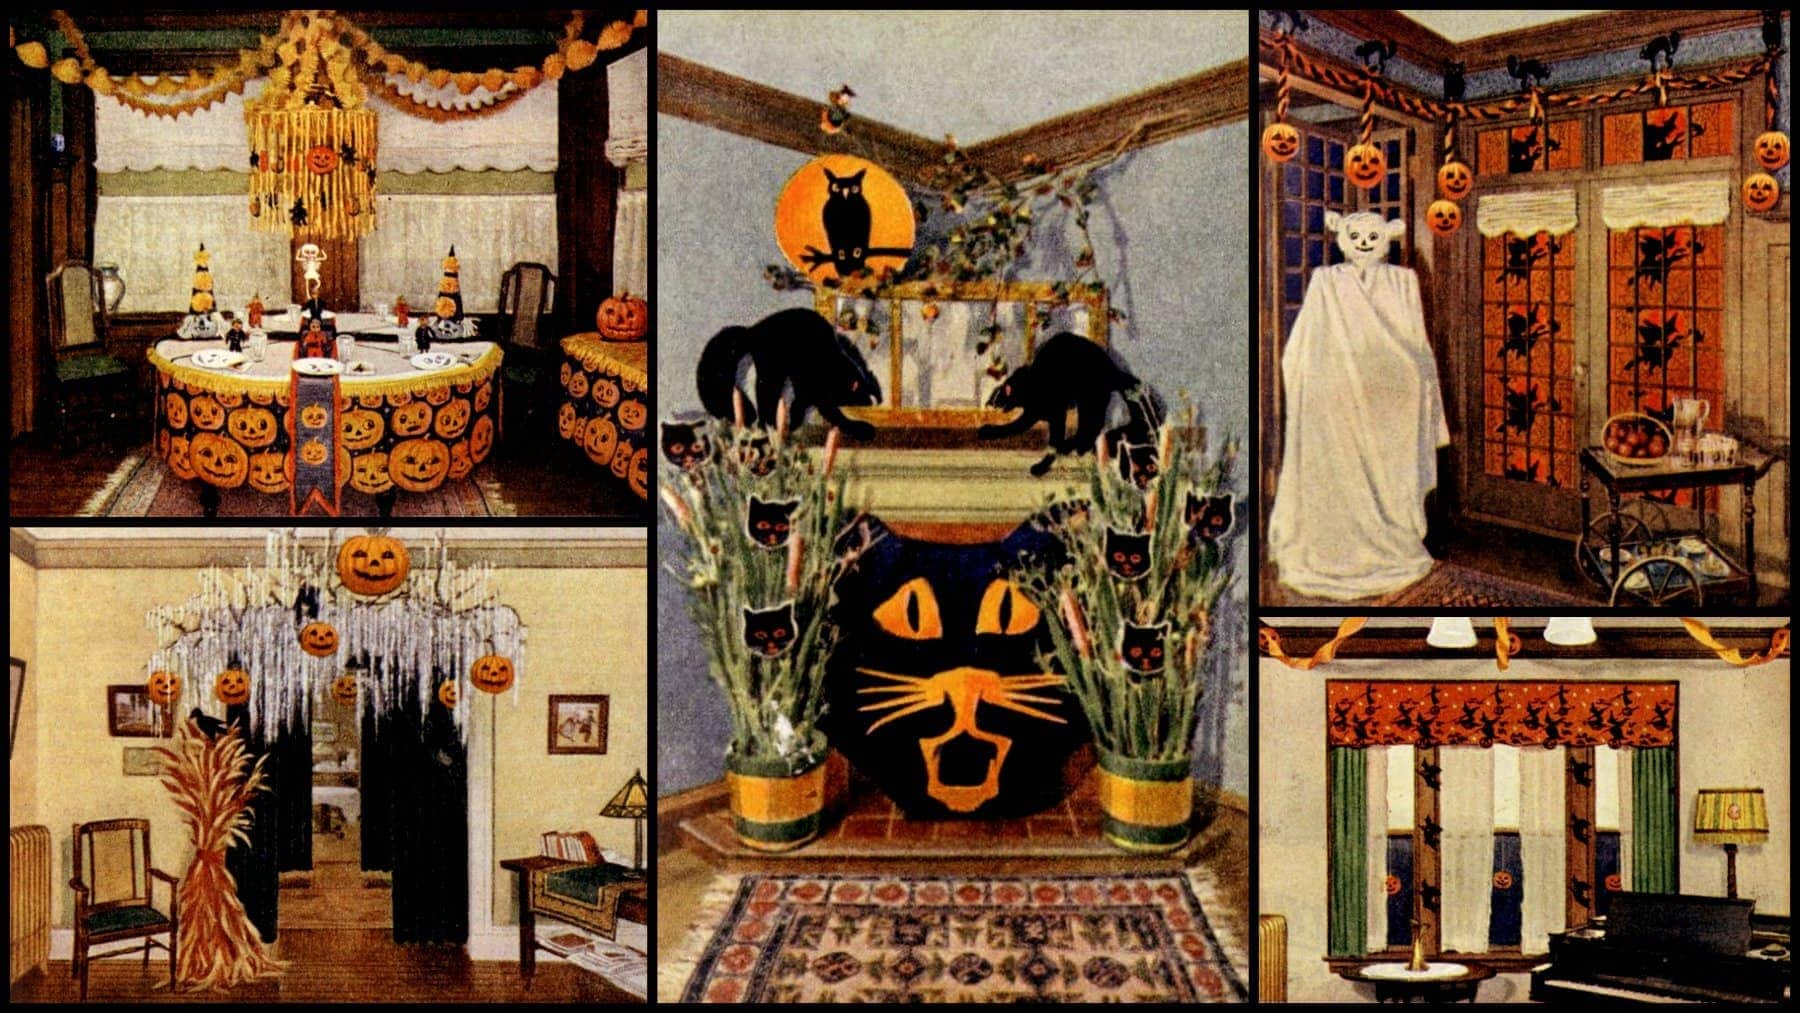 . DIY Halloween decorations on a budget  Fiendishly clever ideas from